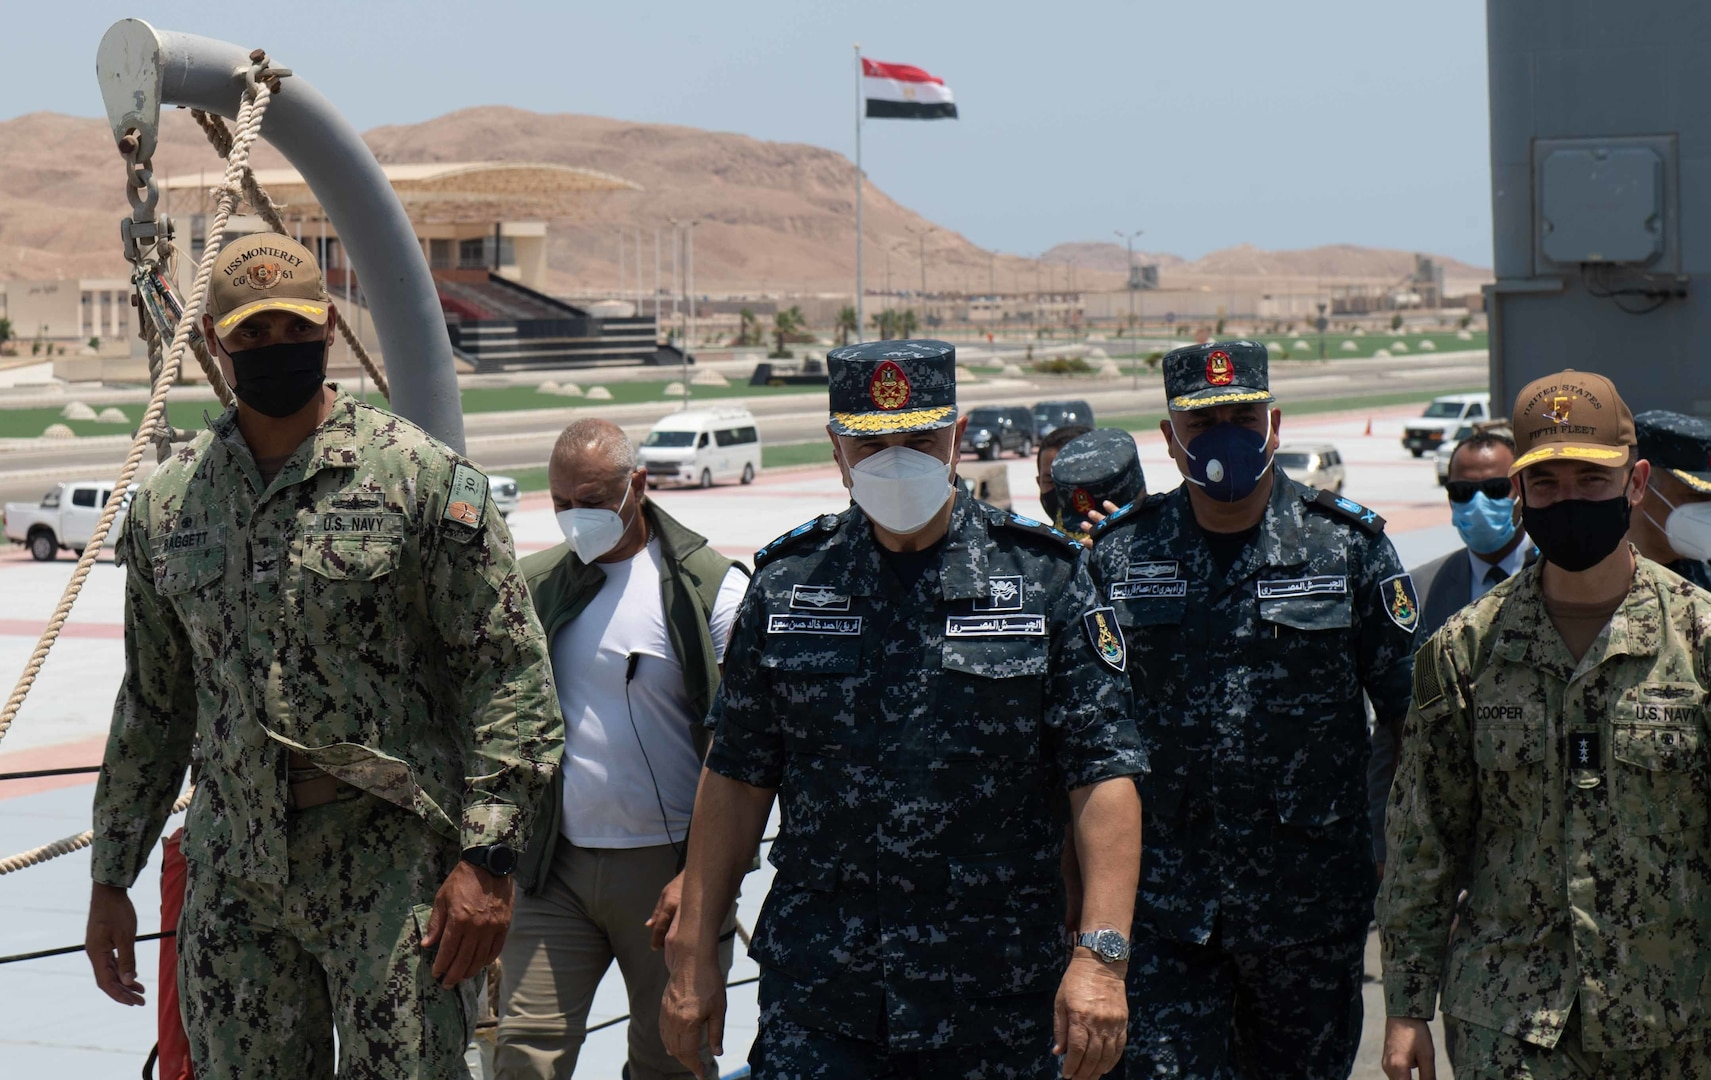 BERENICE, Egypt (August 12, 2021) – Capt. Joseph Baggett, commanding officer of guided-missile cruiser USS Monterey (CG 61), left, Vice Adm. Ahmed Khaled Hassan Saeed, commander of the Egyptian Naval Force, center, and Vice Adm. Brad Cooper, commander of U.S. Naval Forces Central Command (NAVCENT), U.S. 5th Fleet and Combined Maritime Forces (CMF), far right, walk together during a tour of the ship in Berenice, Egypt, Aug. 12. Monterey is deployed to the U.S. 5th Fleet area of operations in support of naval operations to ensure maritime stability and security in the Central Region, connecting the Mediterranean and Pacific through the western Indian Ocean and three strategic choke points. (U.S. Navy photo by Mass Communication Specialist Seaman Chelsea Palmer)